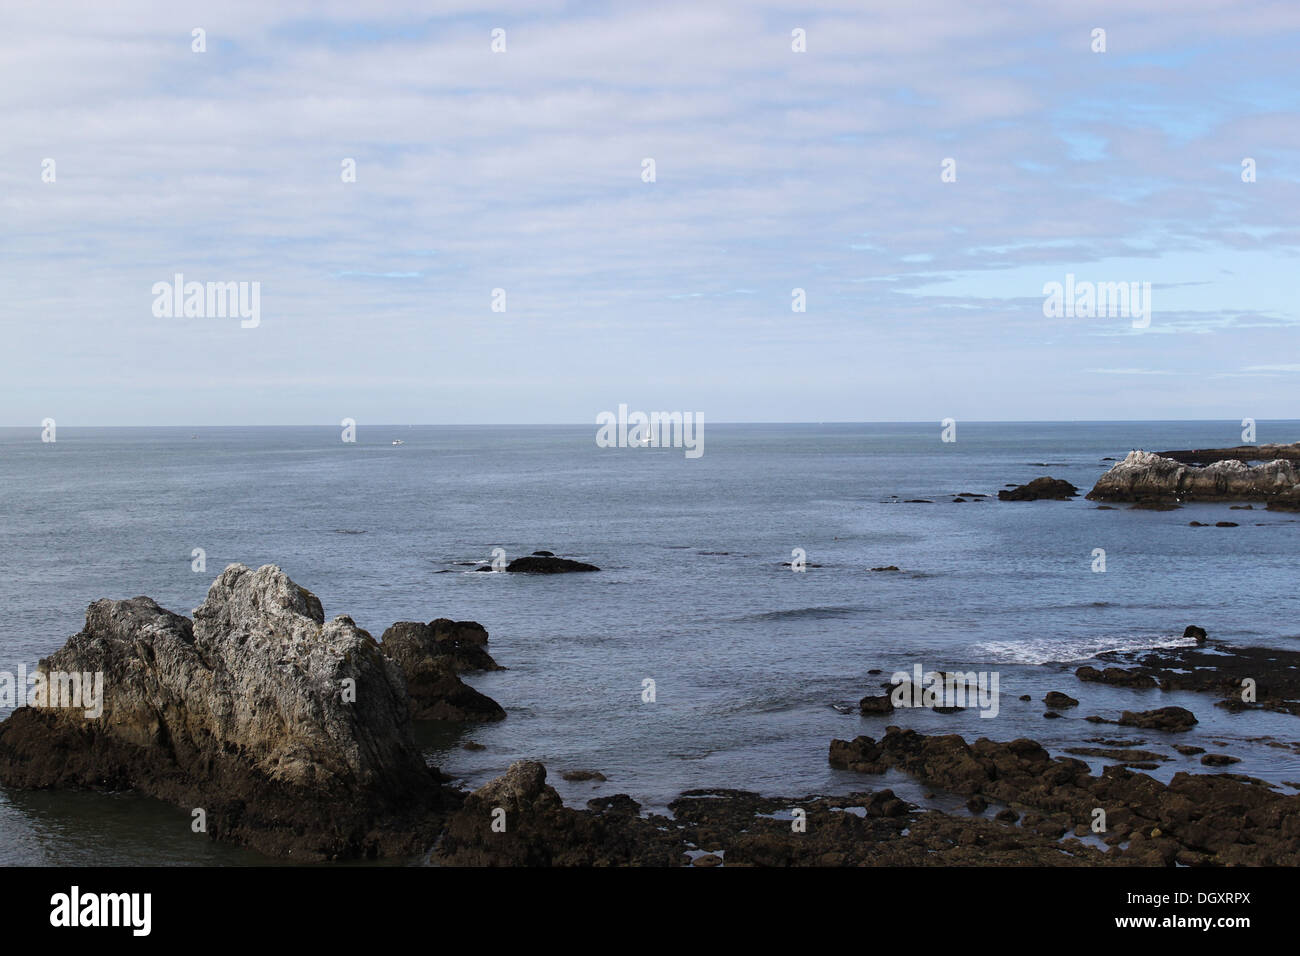 Cote sauvage - wild coast(Atlantic) in the north of France with ship - Stock Image